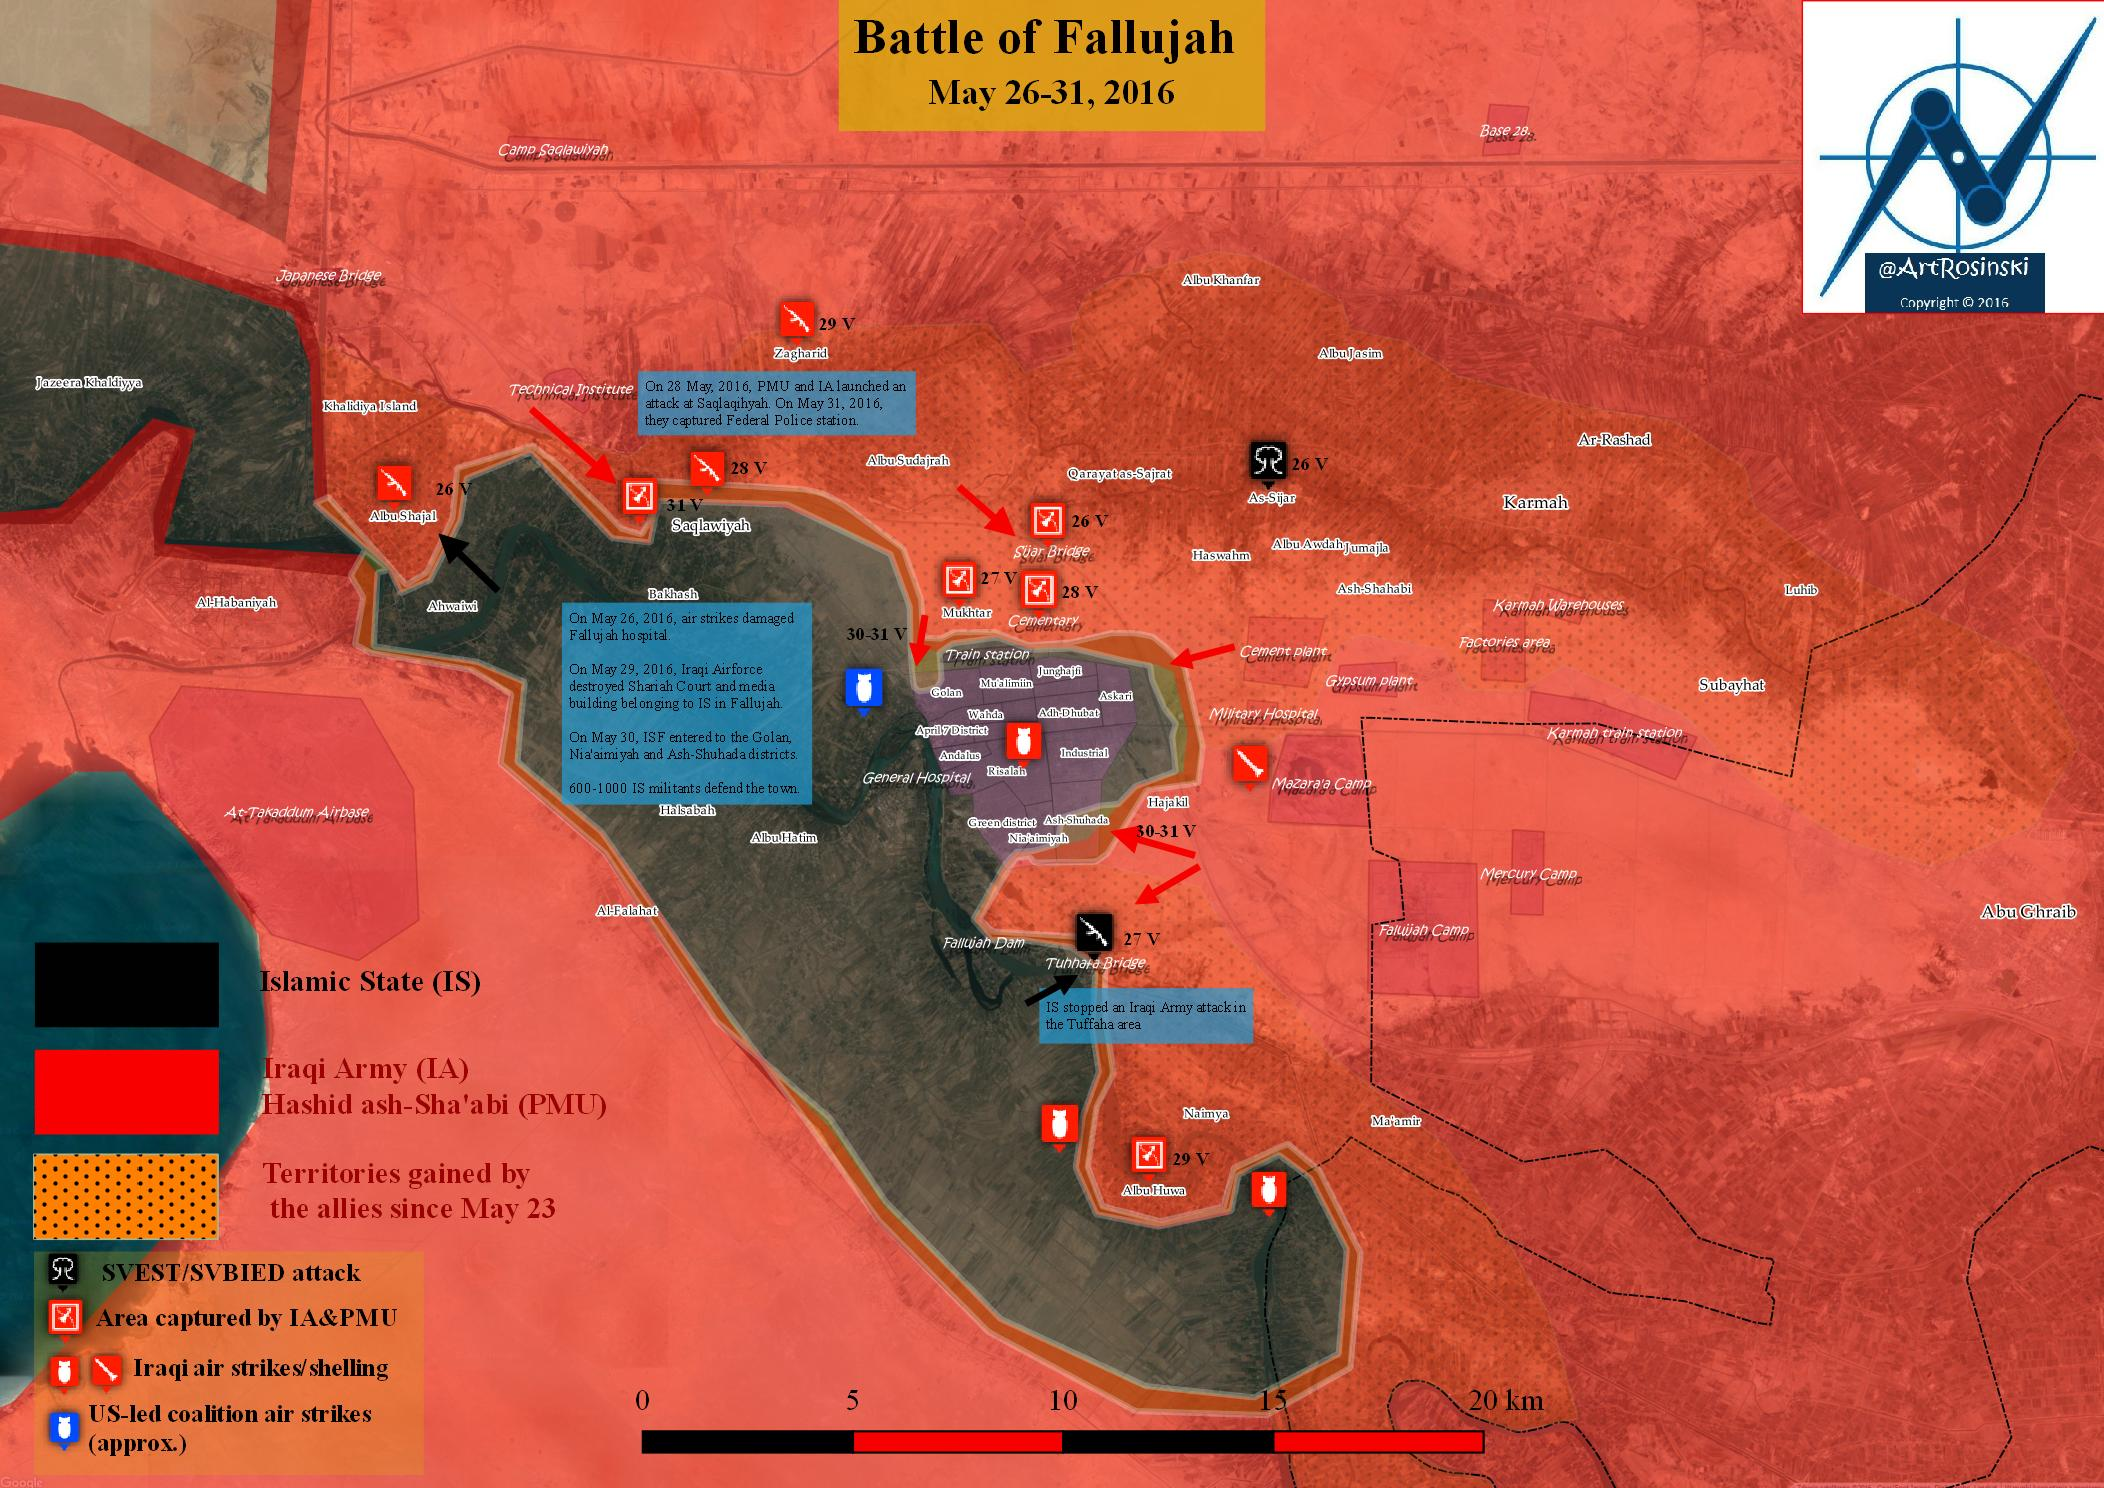 Military Situation in the Area of Fallujah, Iraq, May 26-31